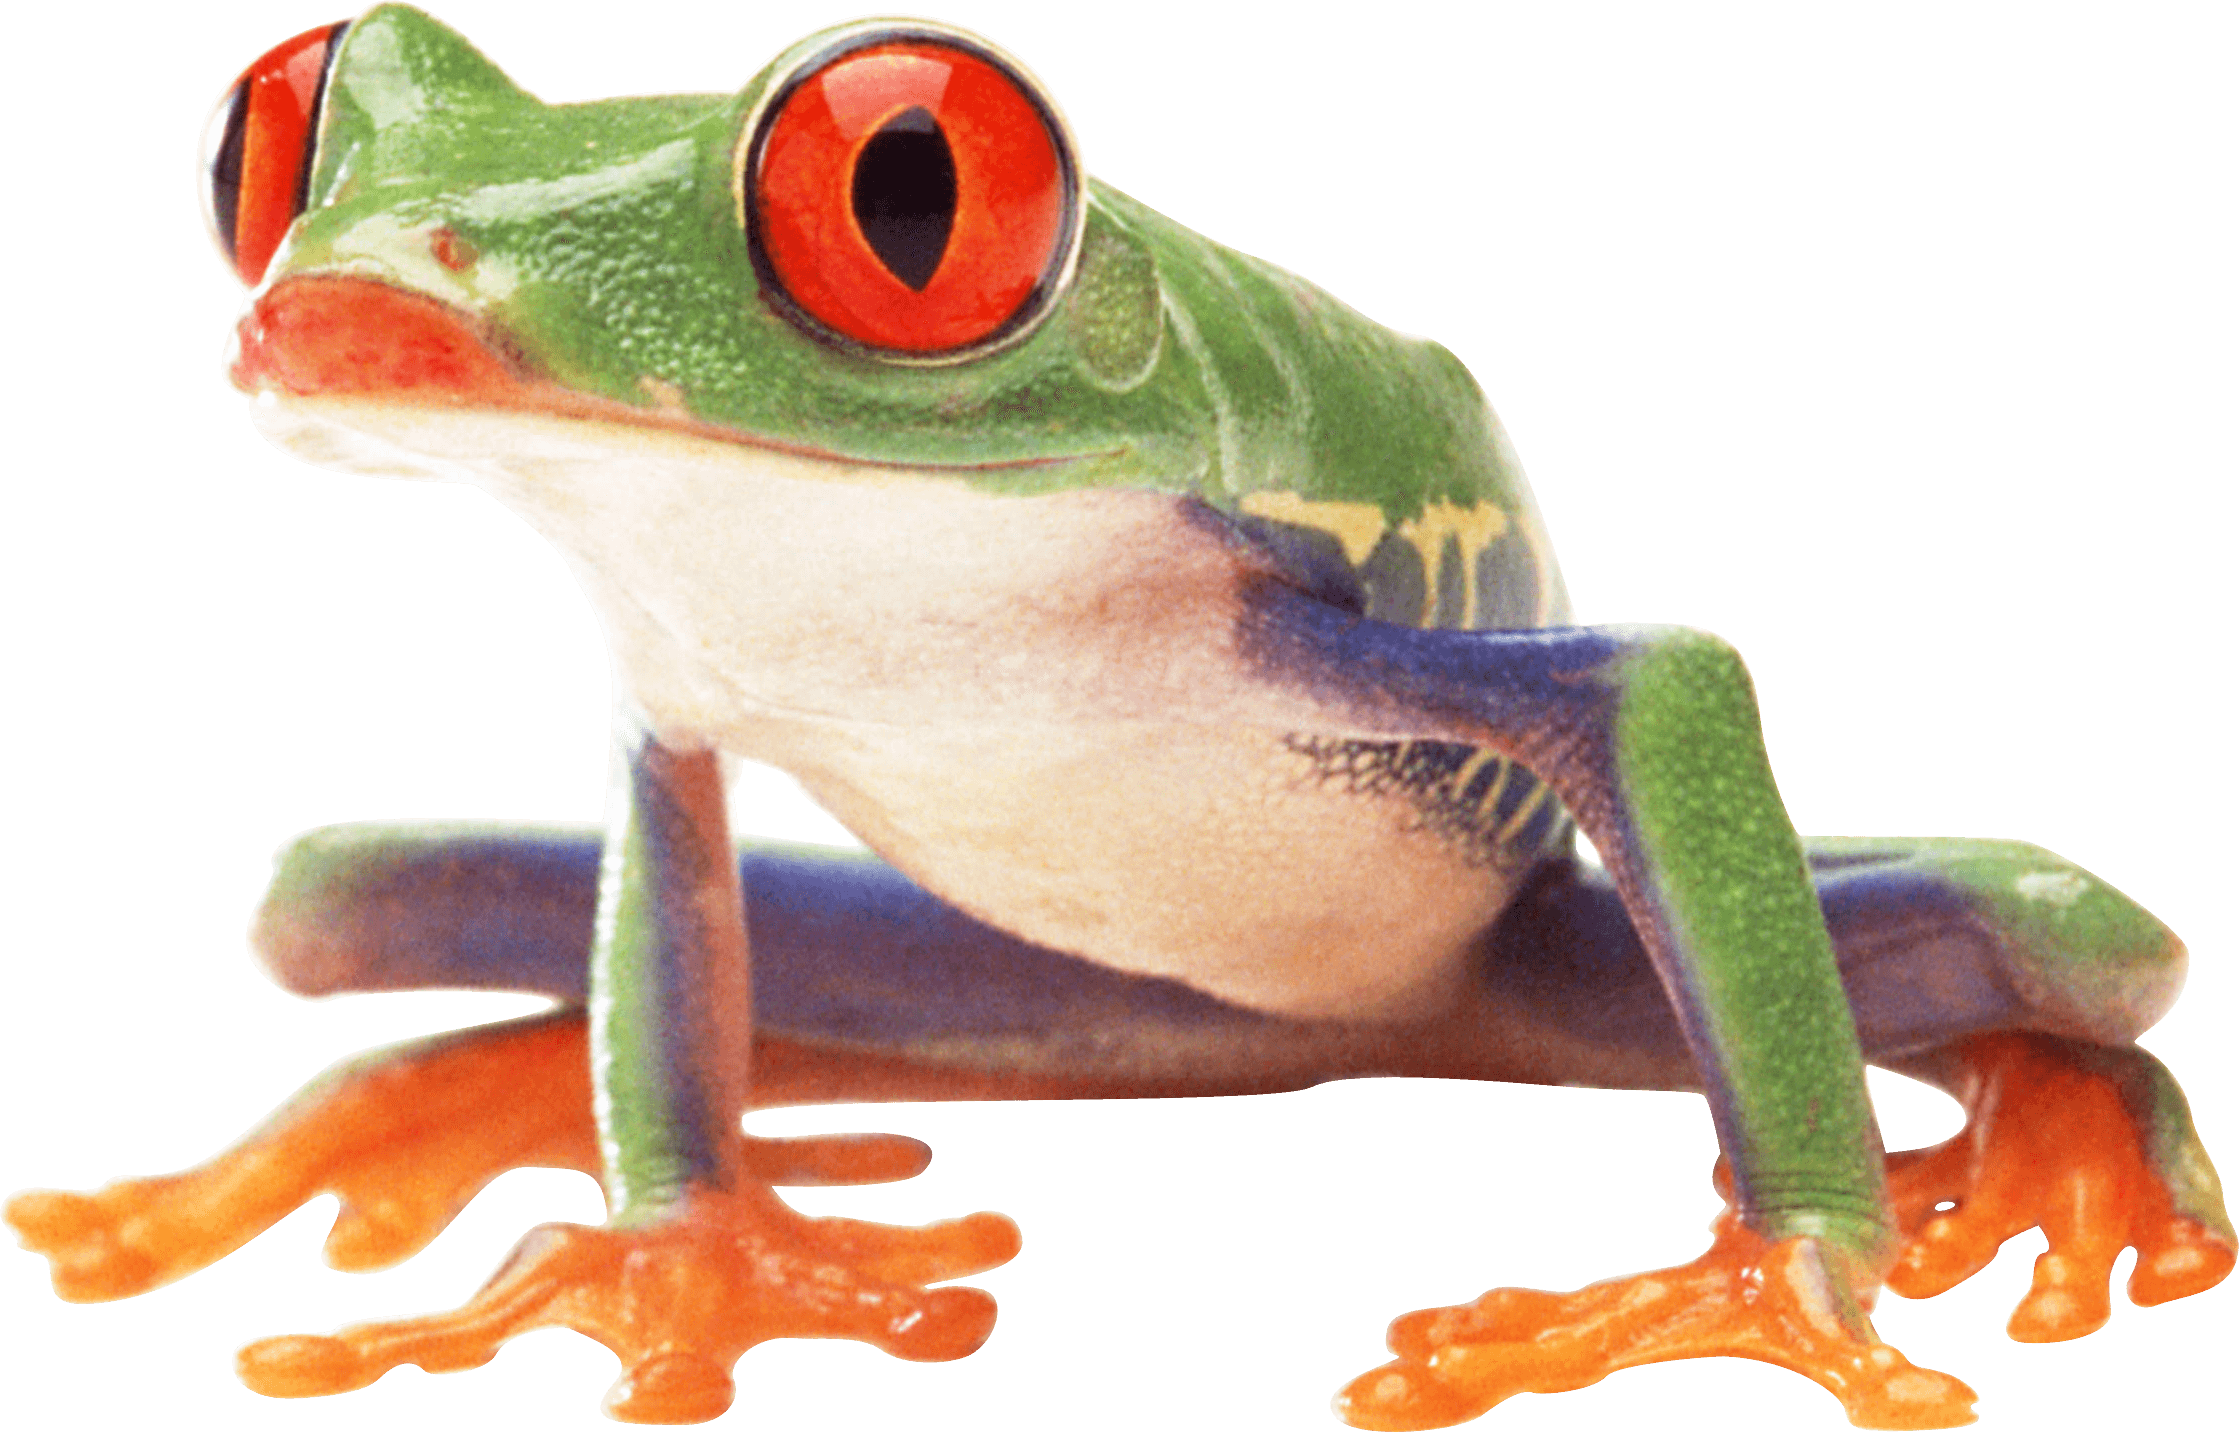 Clown Frog clipart #3, Download drawings